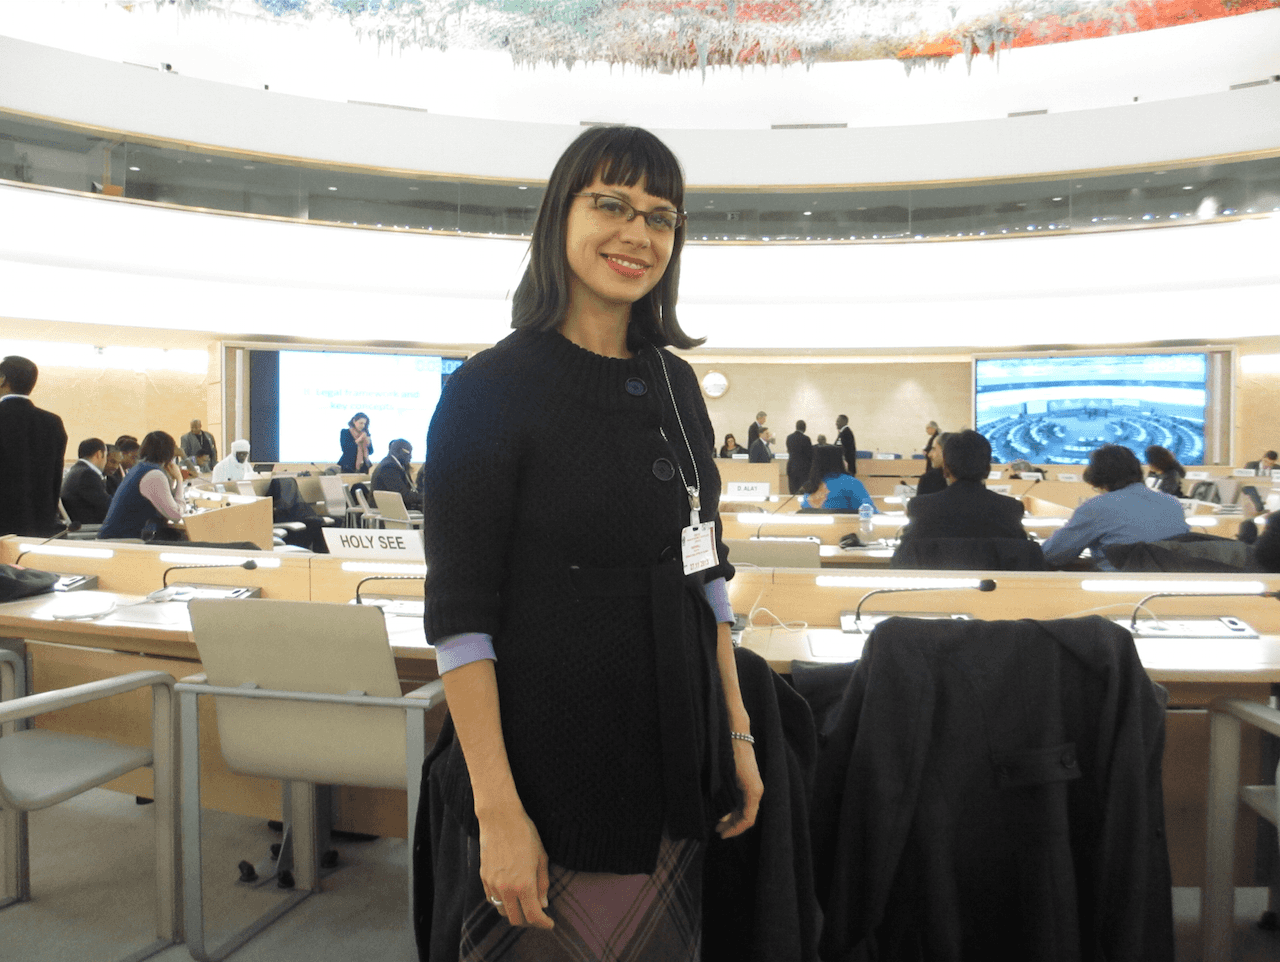 Inside the UN Human Rights Council, with an amazing ceiling painted/sculpted by Spanish artist Miquel Barcelo